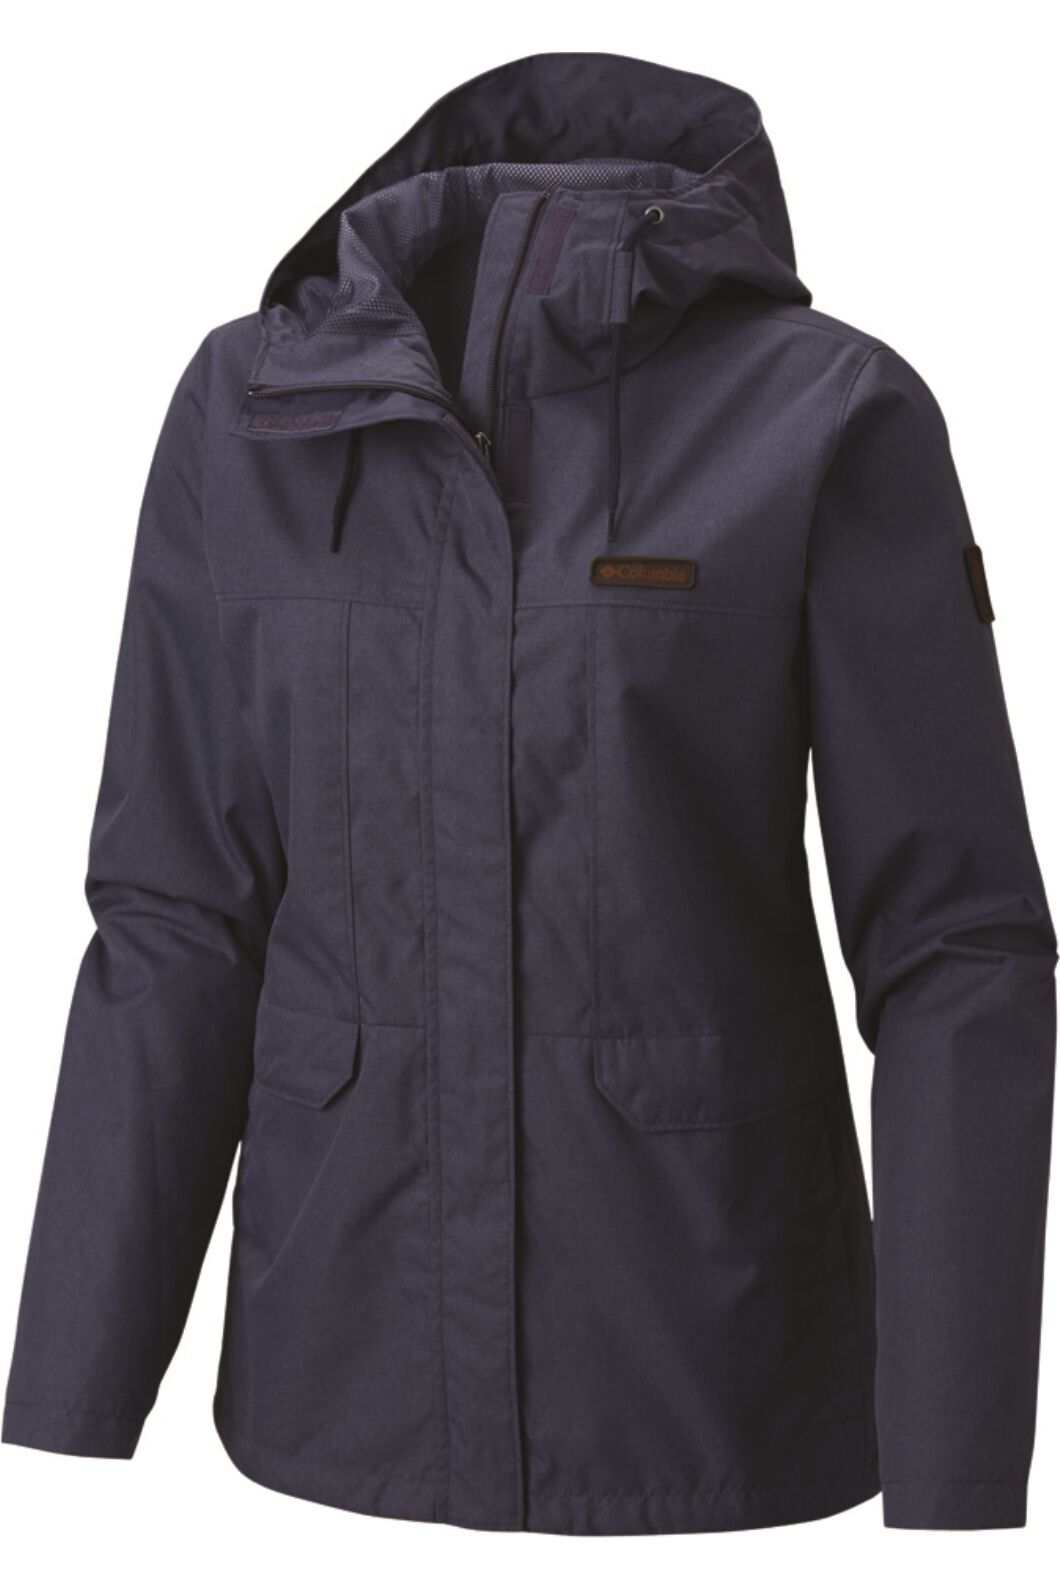 Columbia Women's Peale Point Jacket Cypress, NOCTURNAL, hi-res